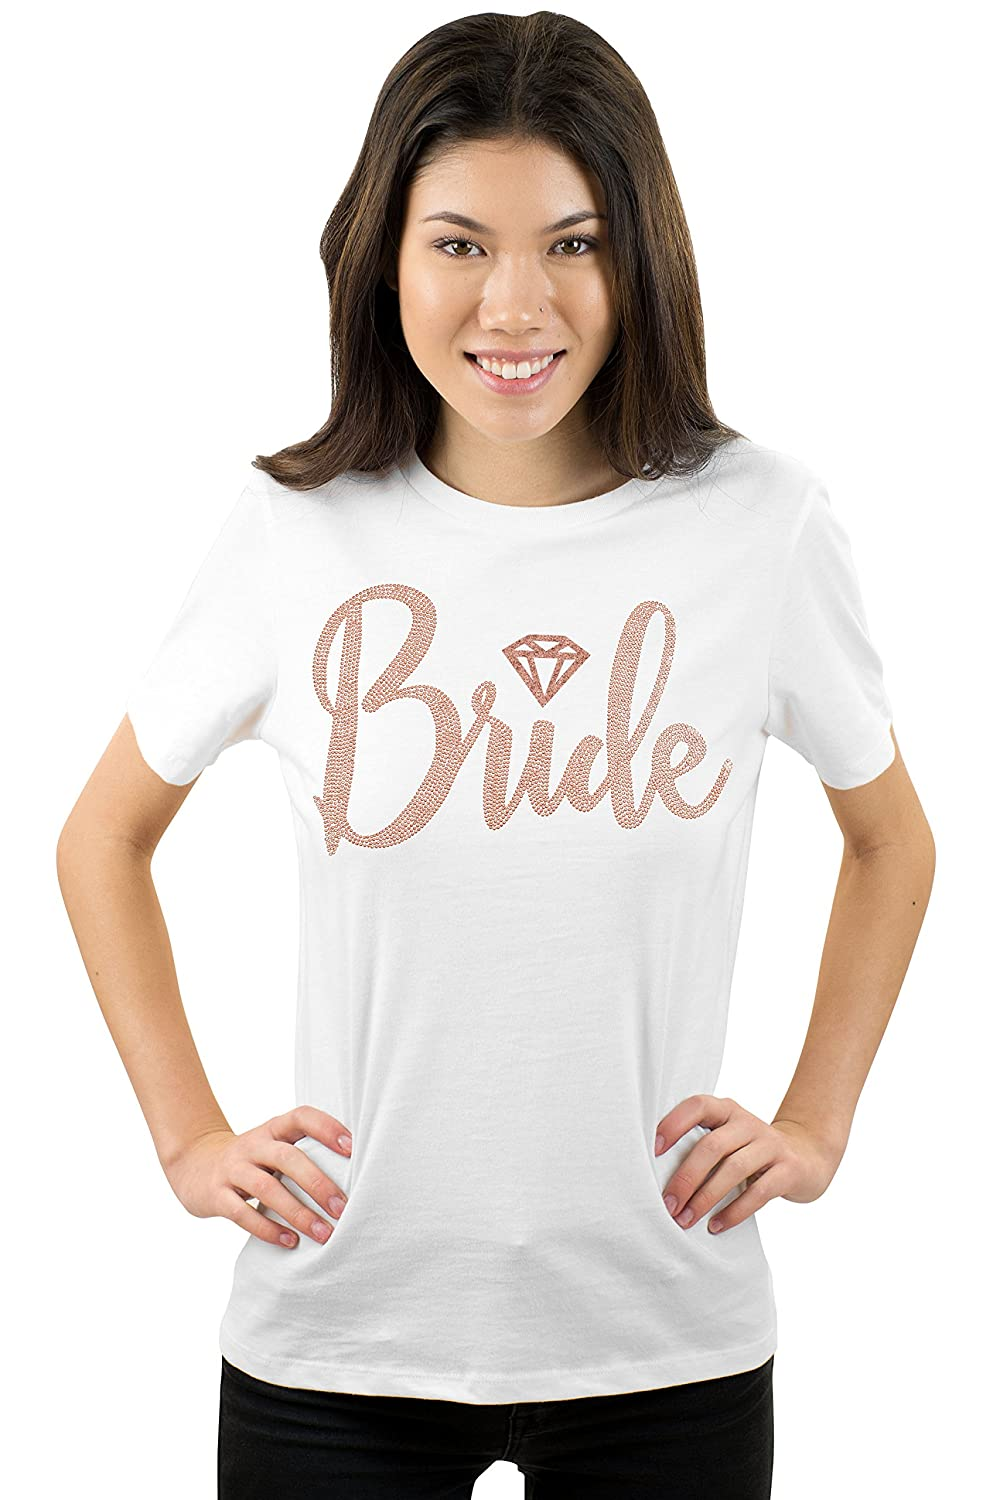 3ce8d84cb Rose Gold Bridal Party Shirts - Bridesmaid, Maid of Honor, I Do Crew, Team  Bride, Bachelorette Party Supplies at Amazon Women's Clothing store: